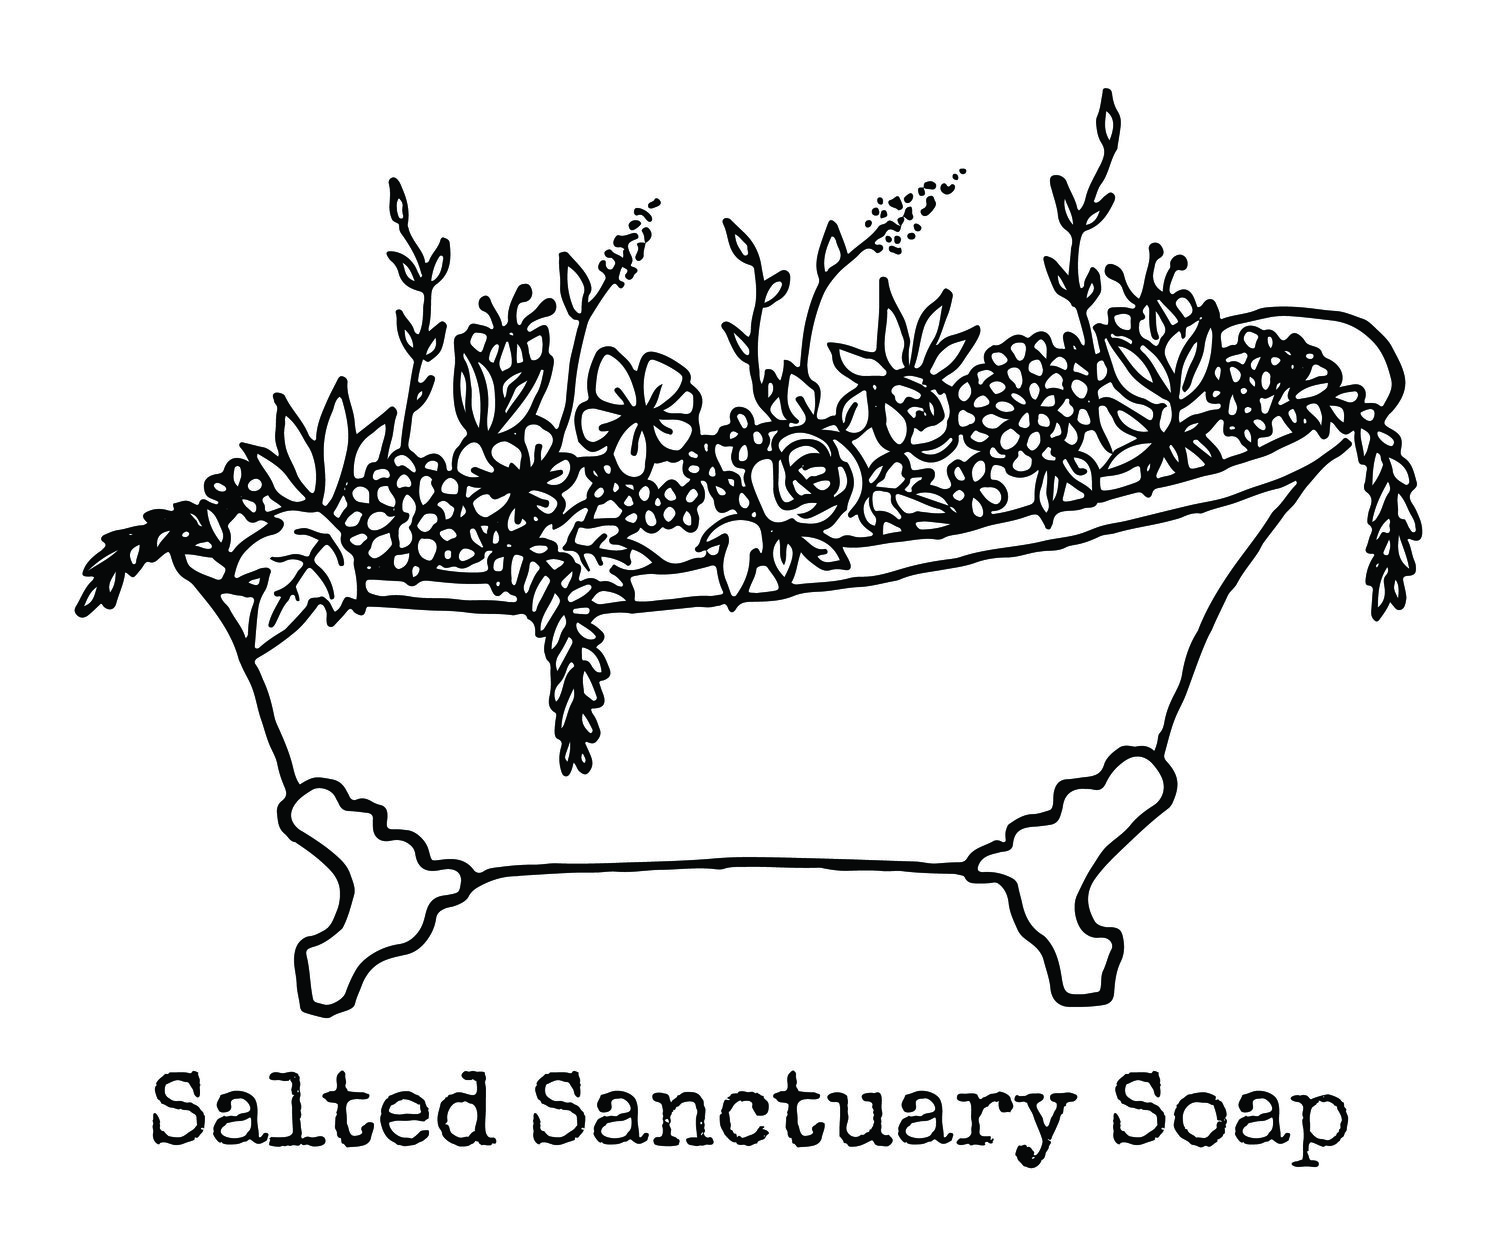 Salted Sanctuary Soap